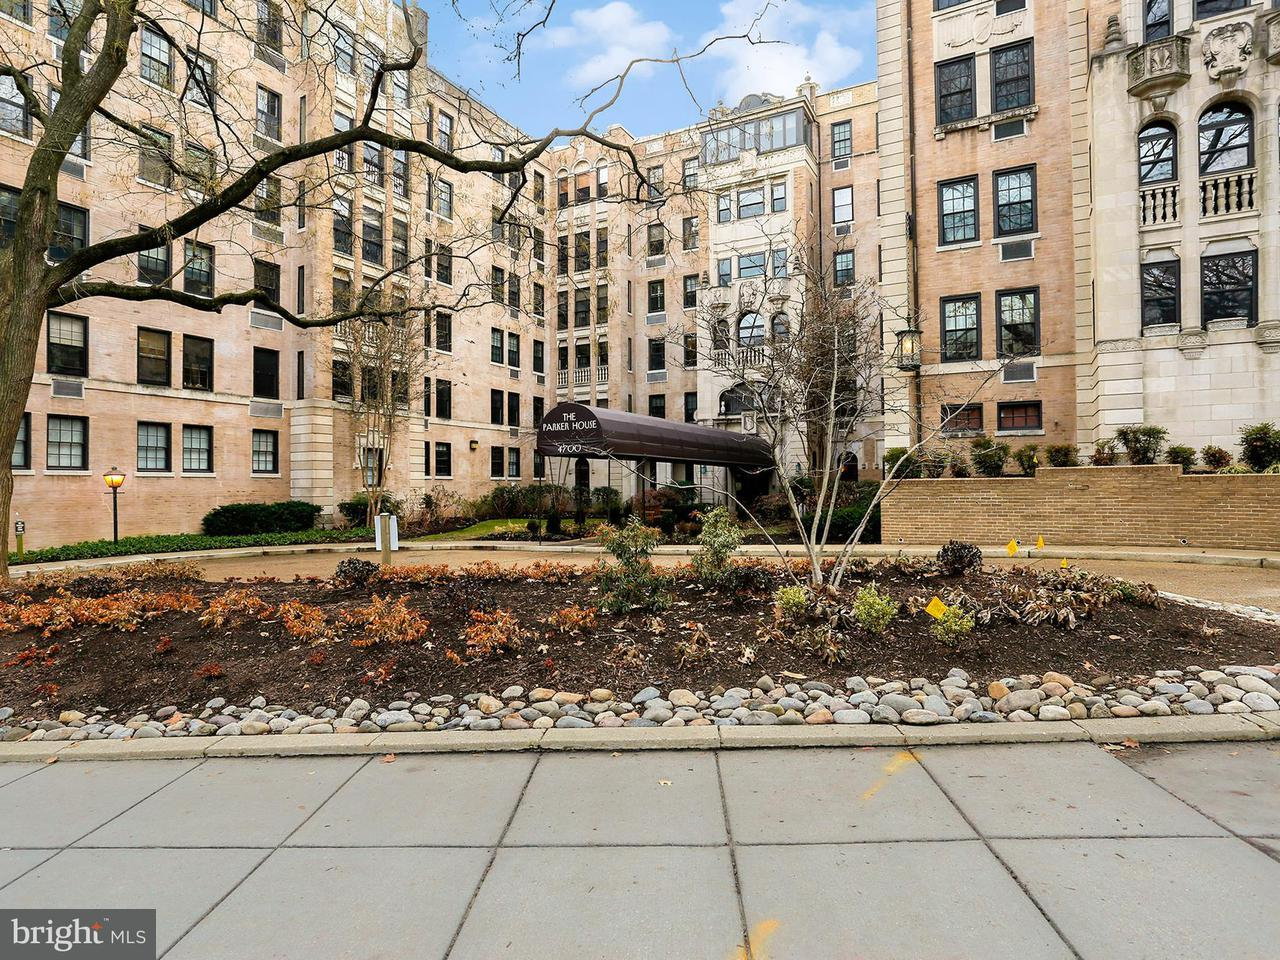 Condominium for Sale at 4700 Connecticut Ave Nw #202 4700 Connecticut Ave Nw #202 Washington, District Of Columbia 20008 United States